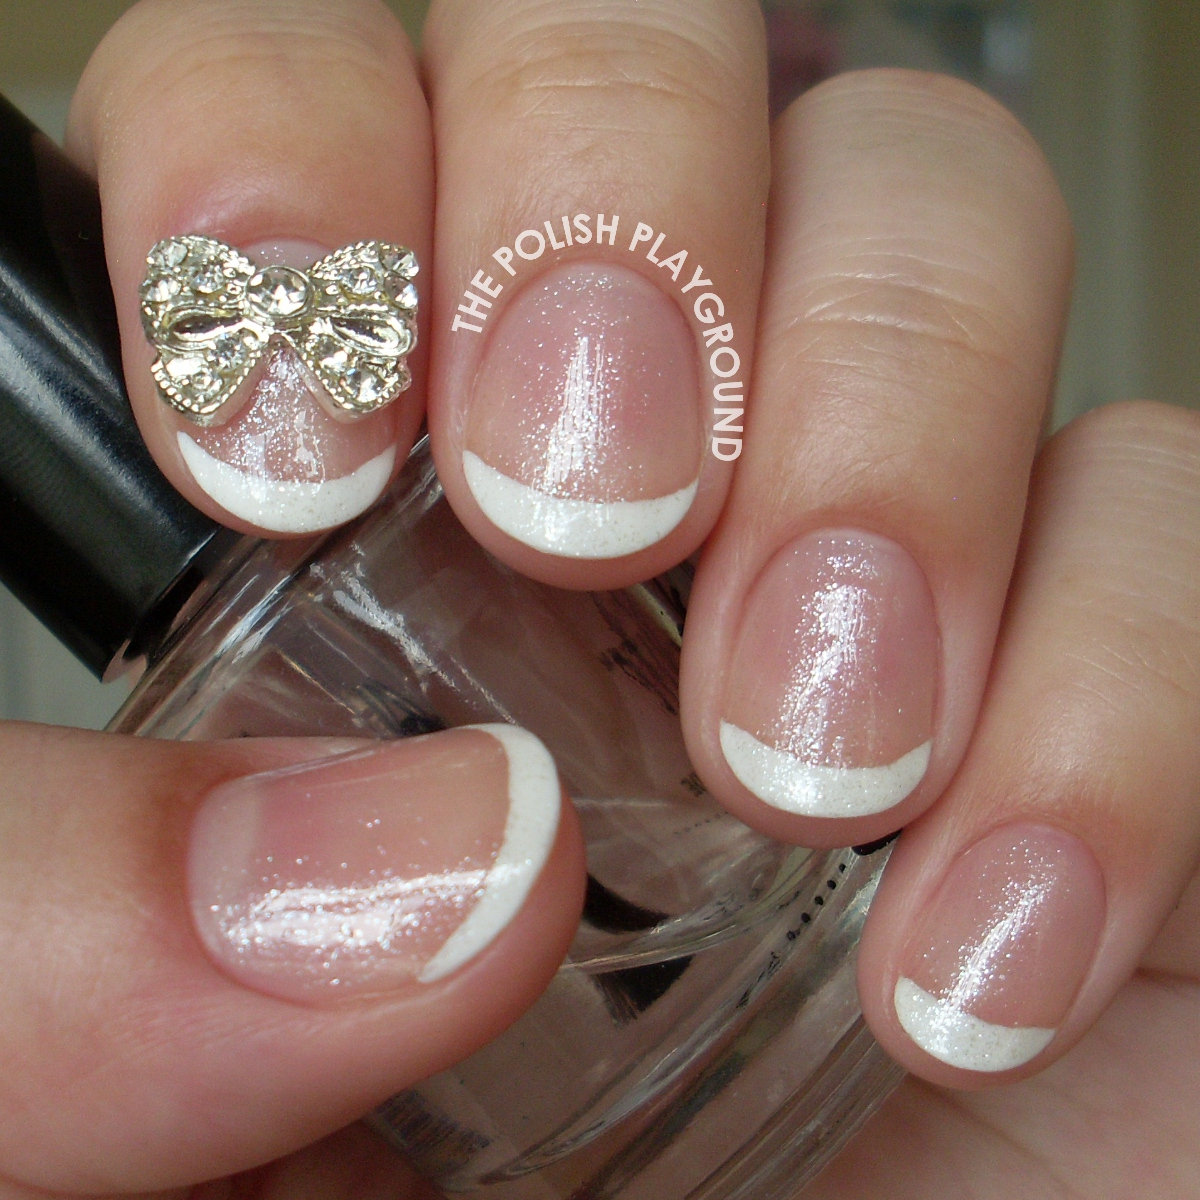 Shimmery Classic French Manicure with Bow Stud Nail Art